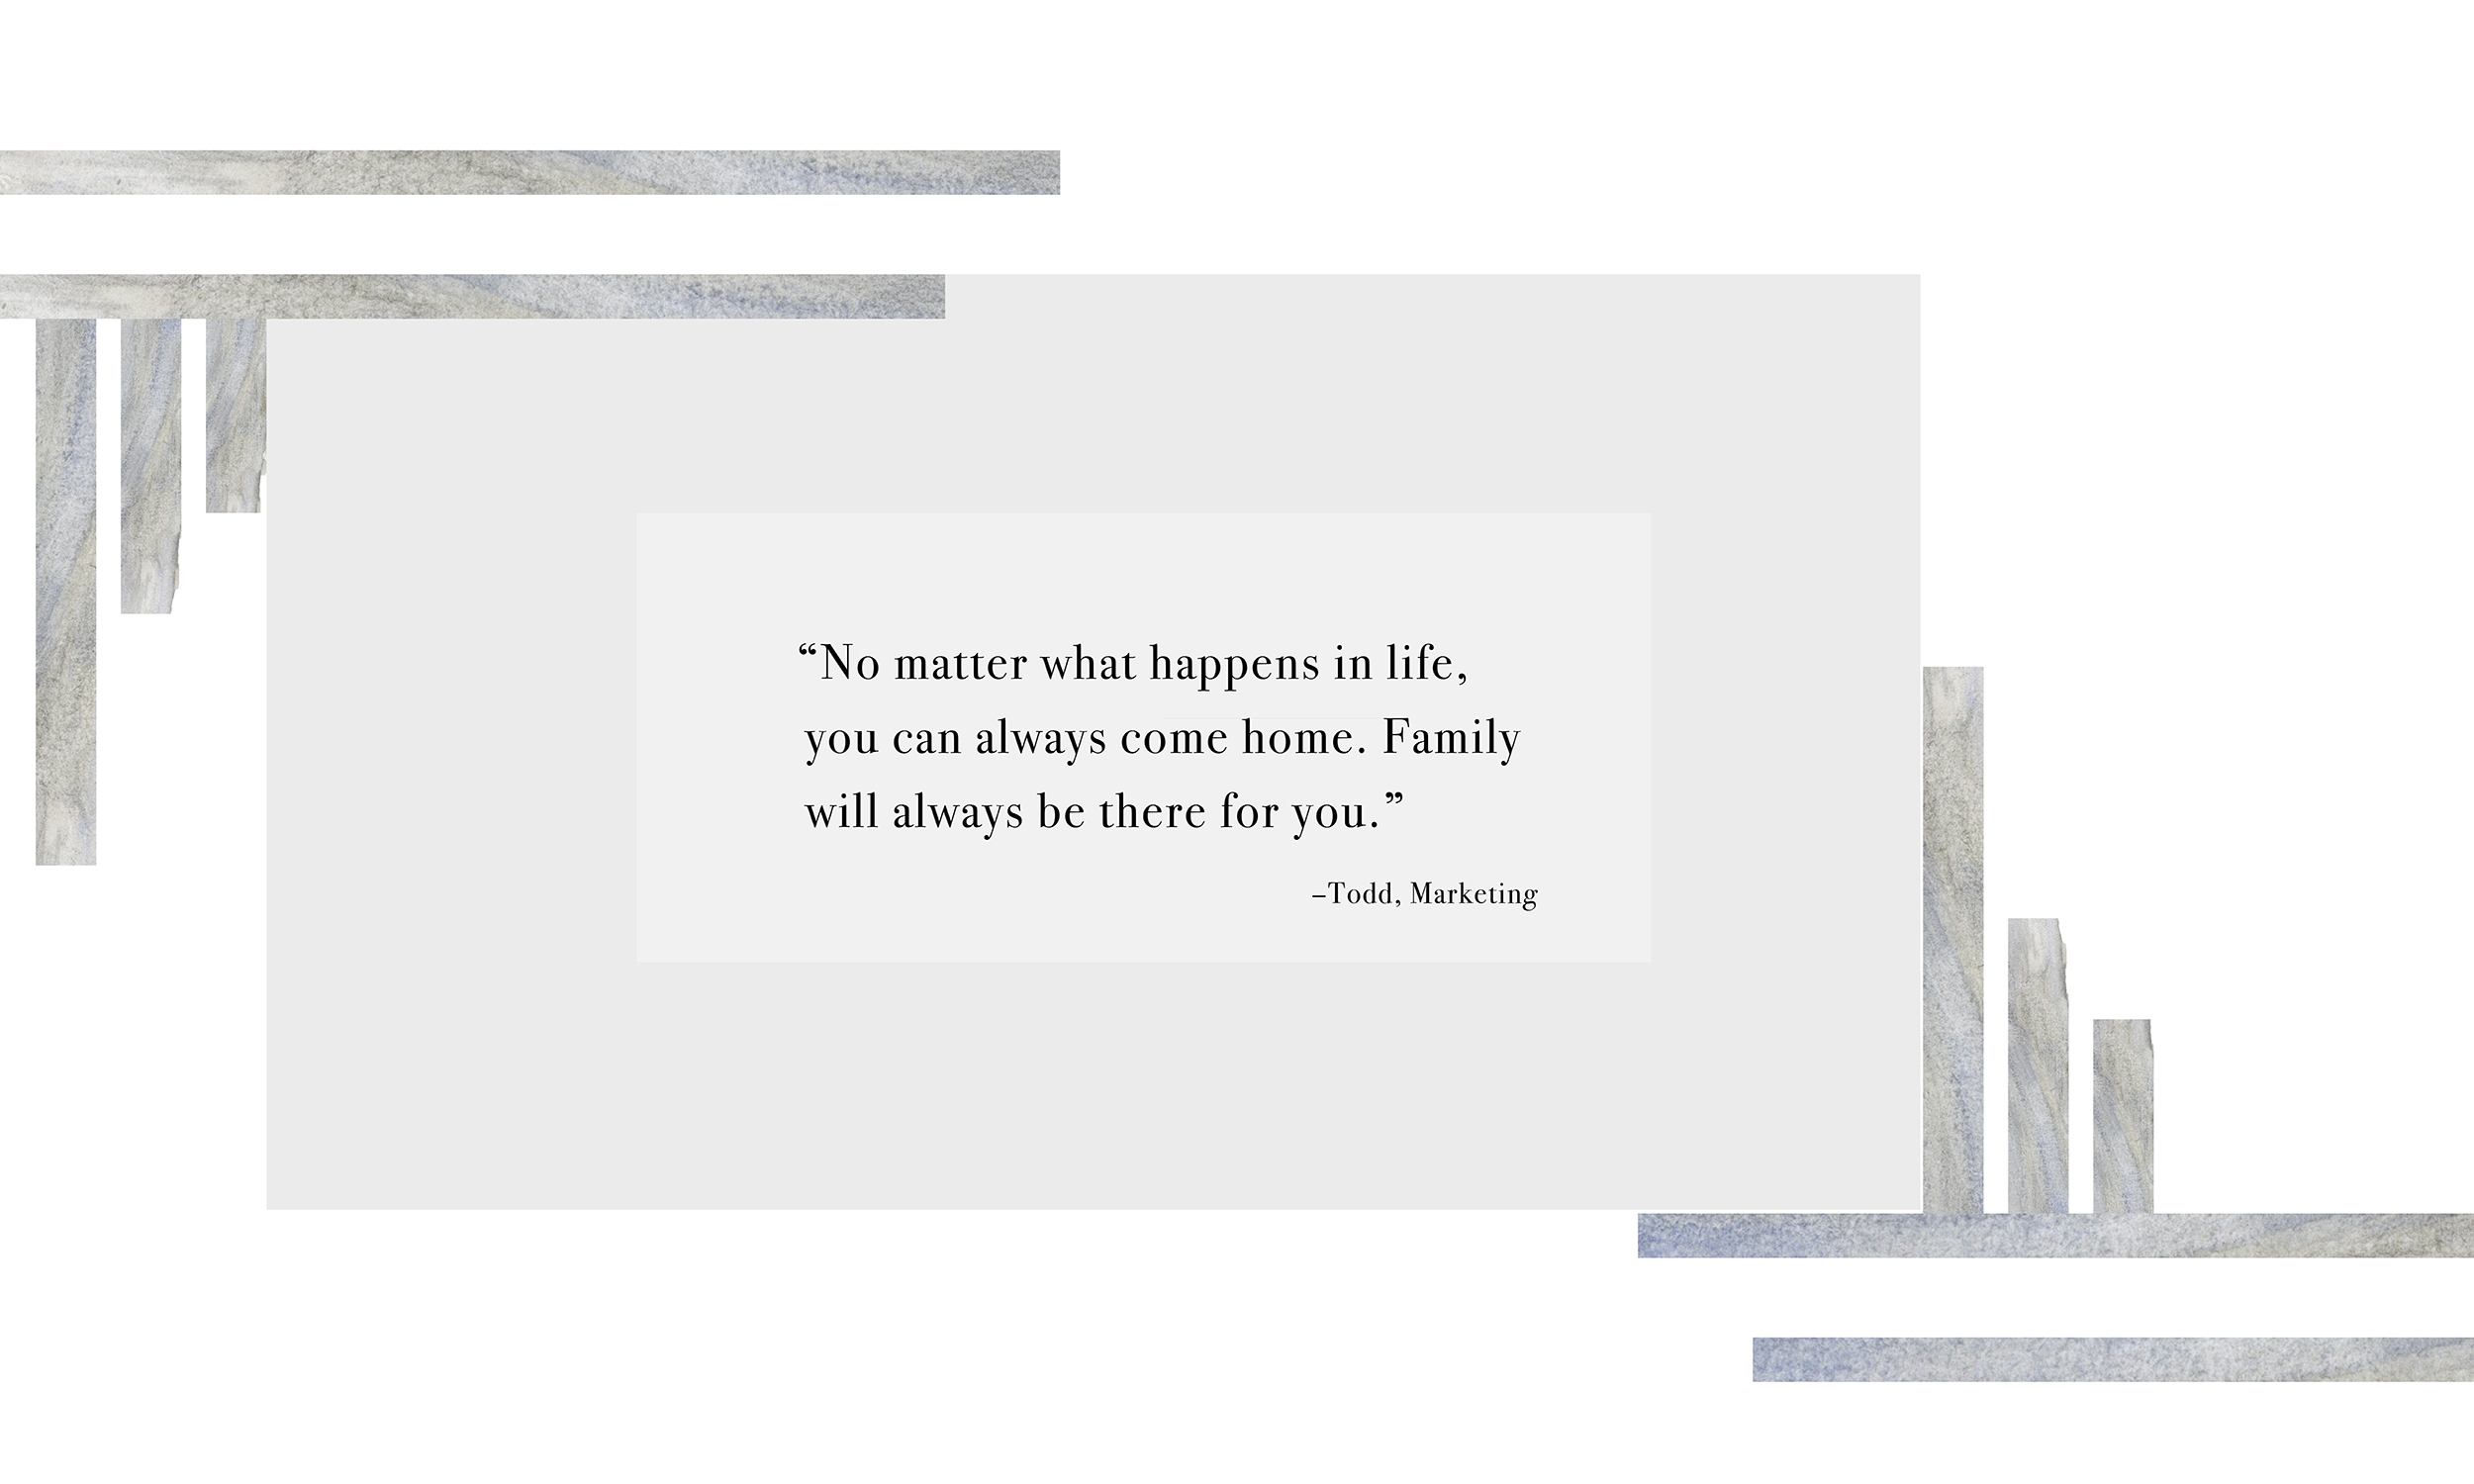 fathers day graphics5.jpg